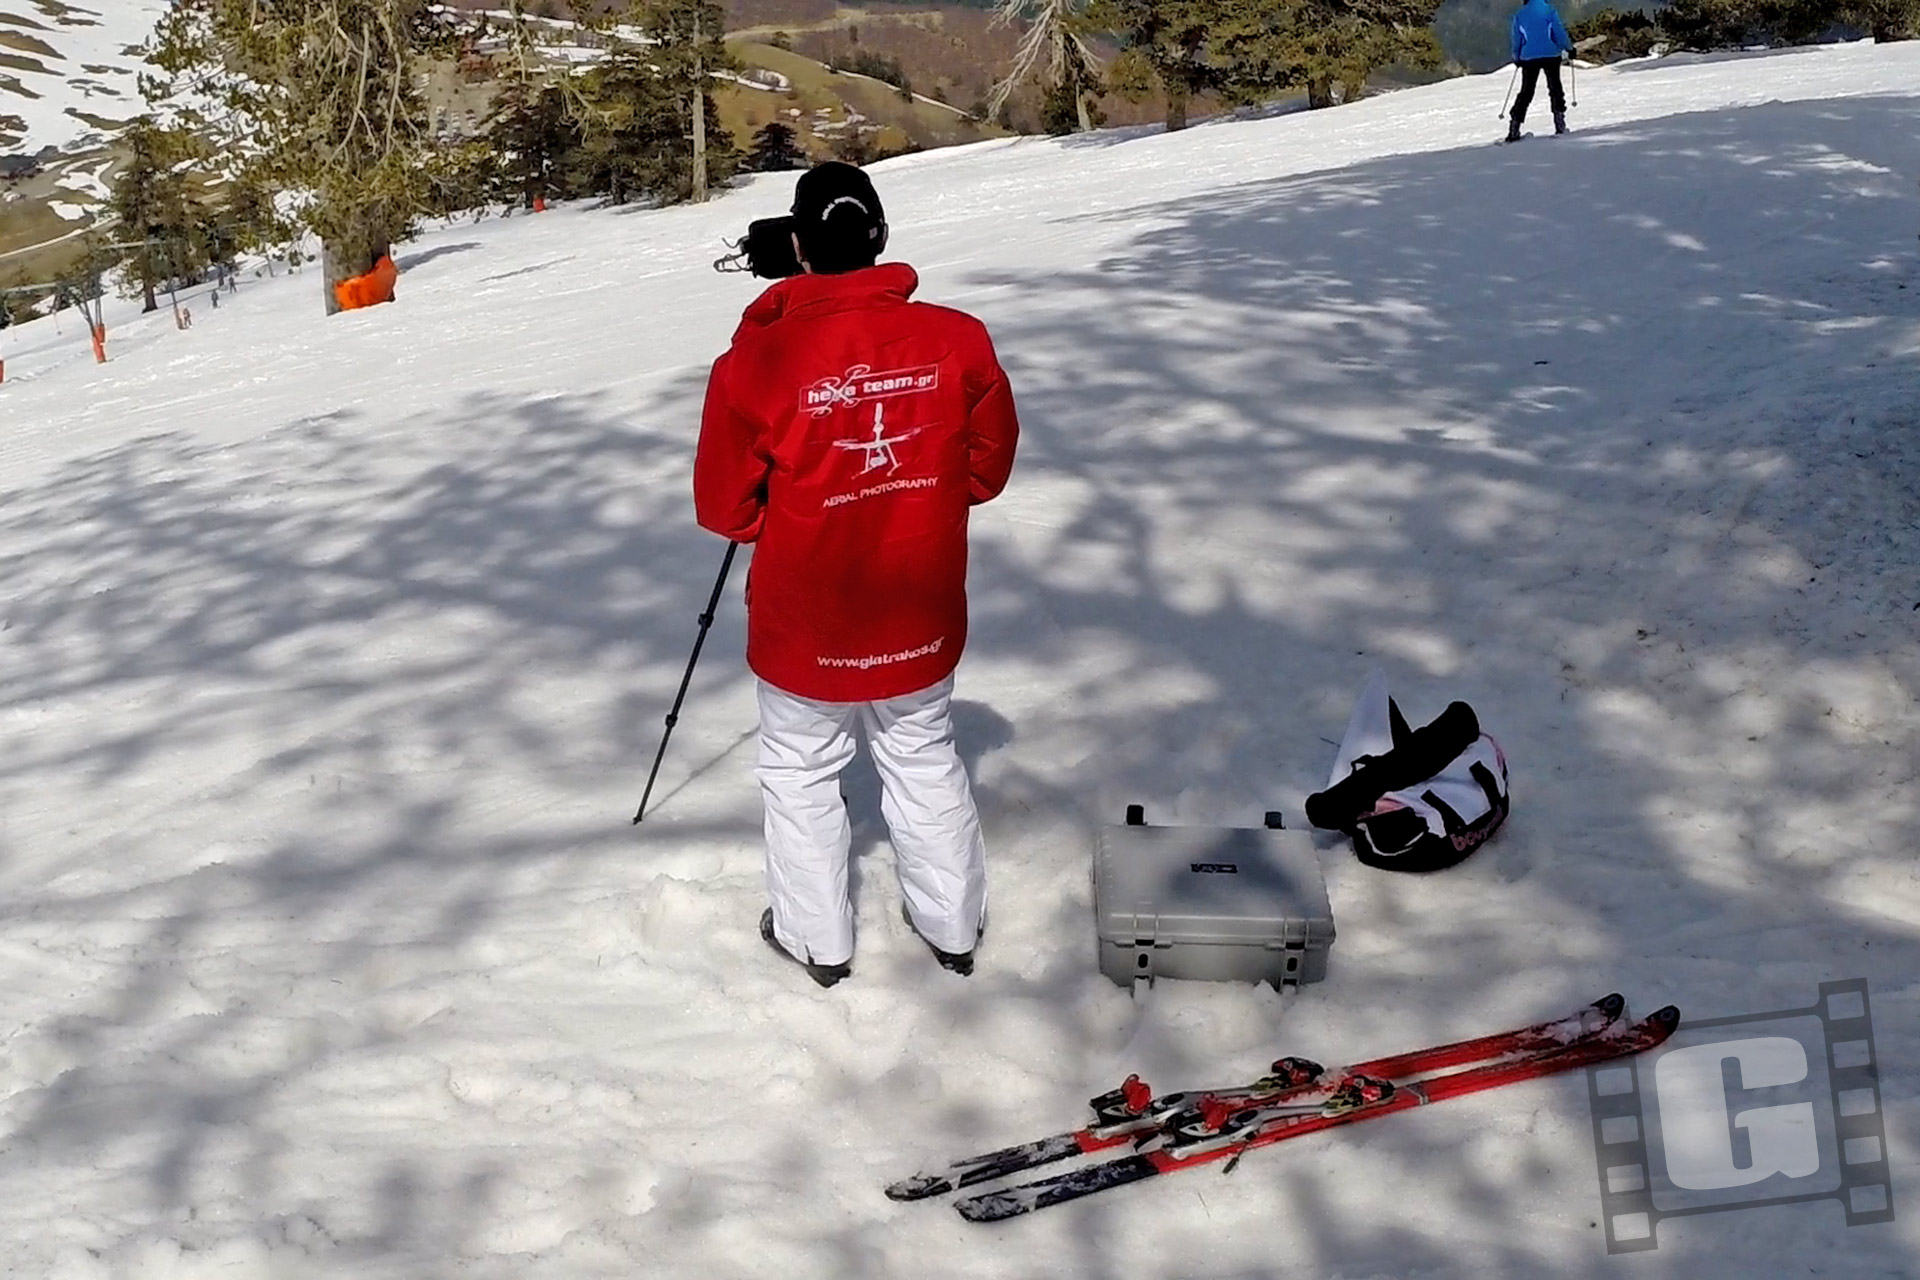 Vasilitsa Ski Center, Βασιλίτσα, Drone Video, εναέριο βίντεο, parkoluna, red bull, Chris Giatrakos